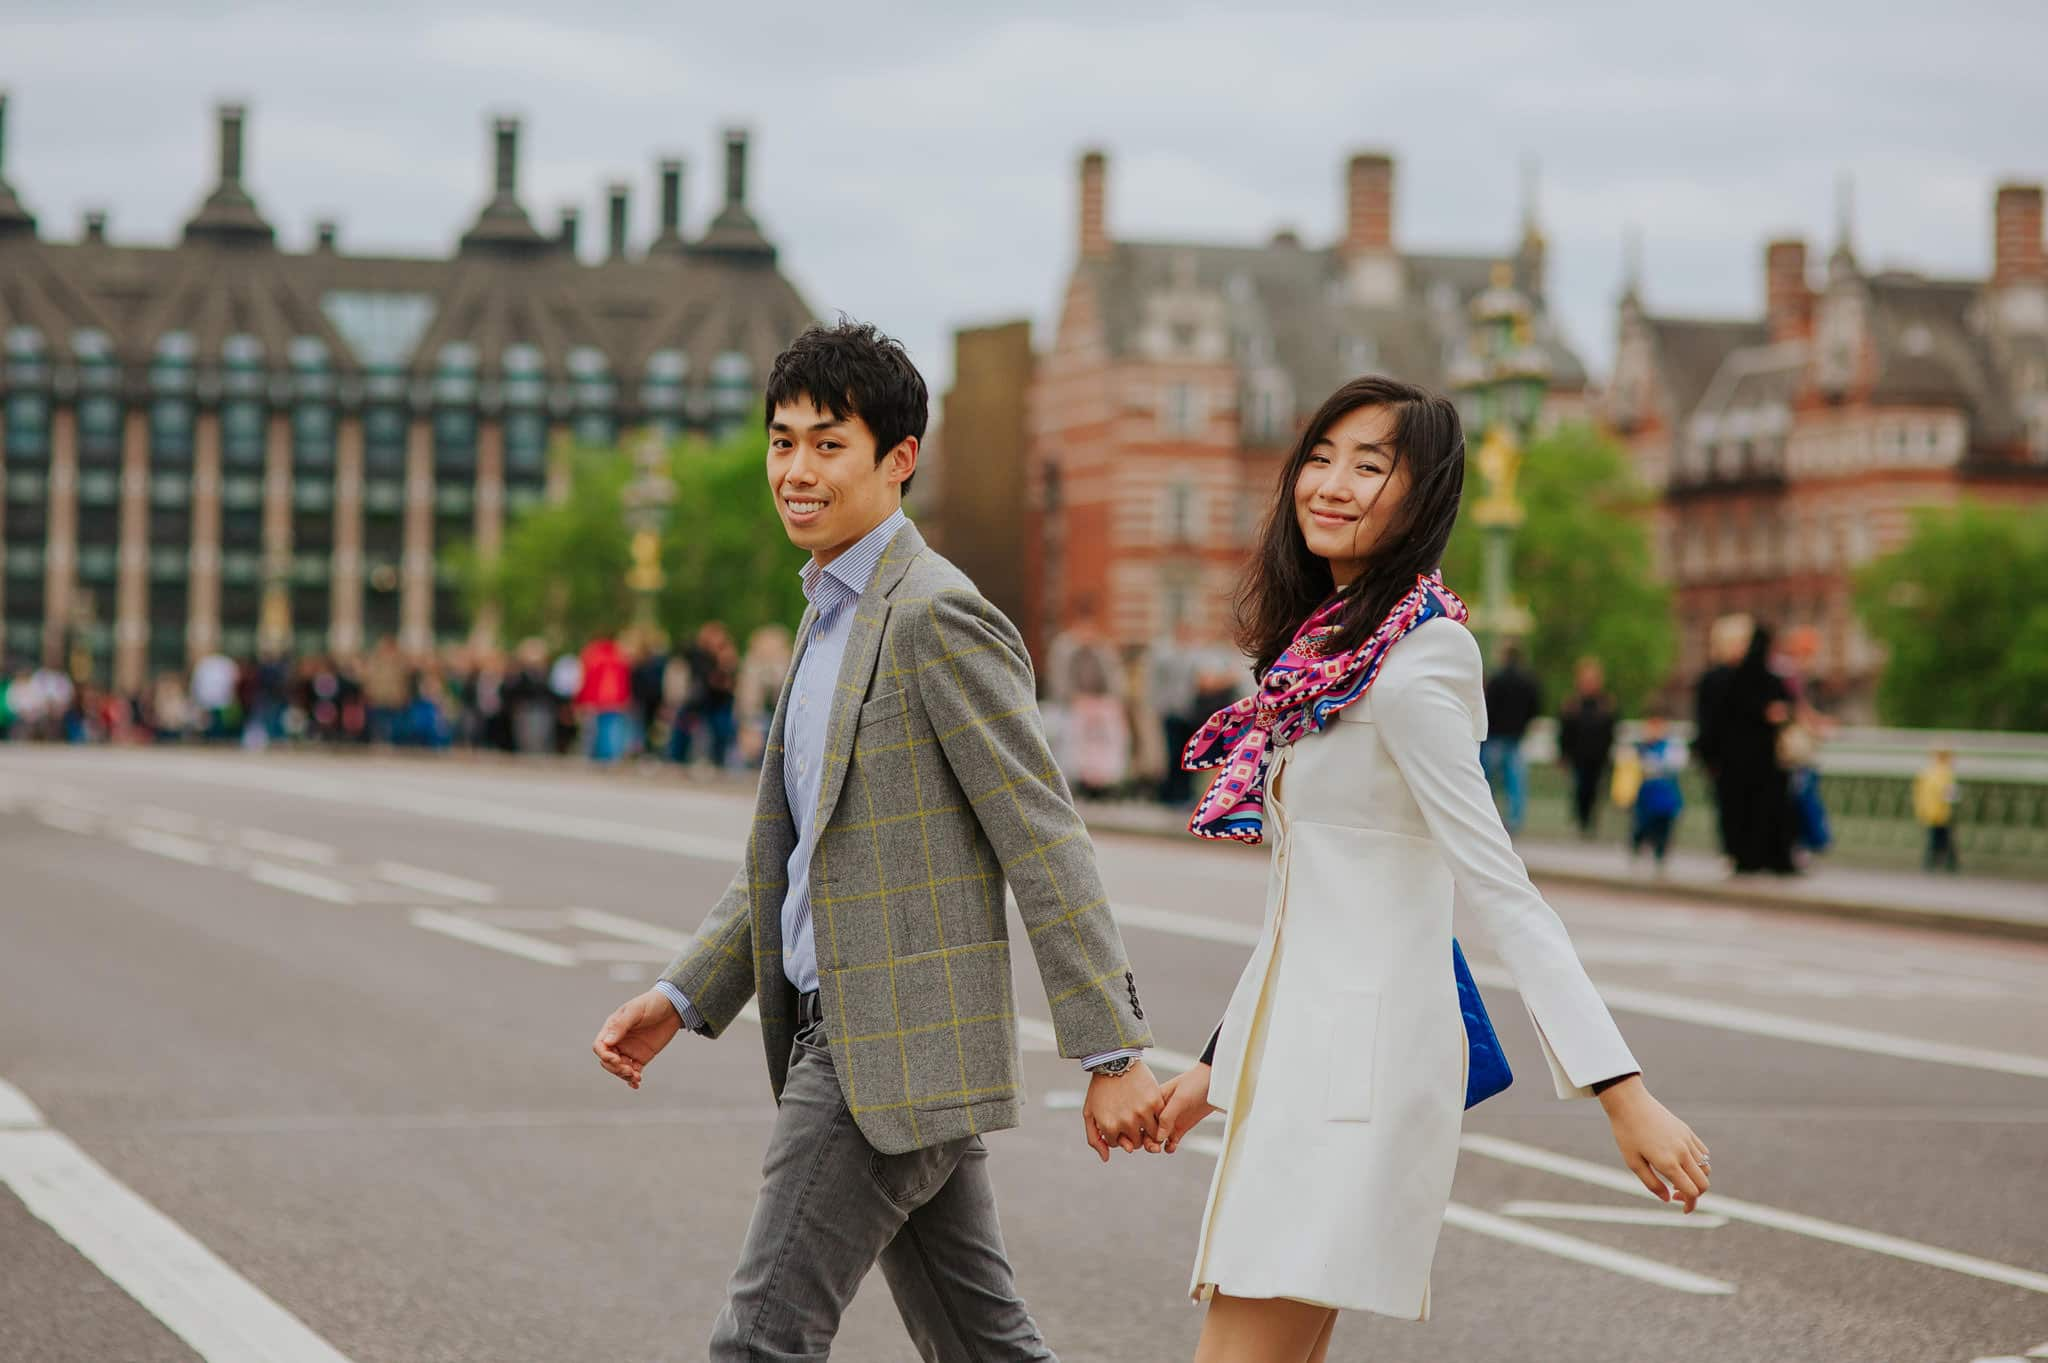 Yilin + Jason | London engagement session 2